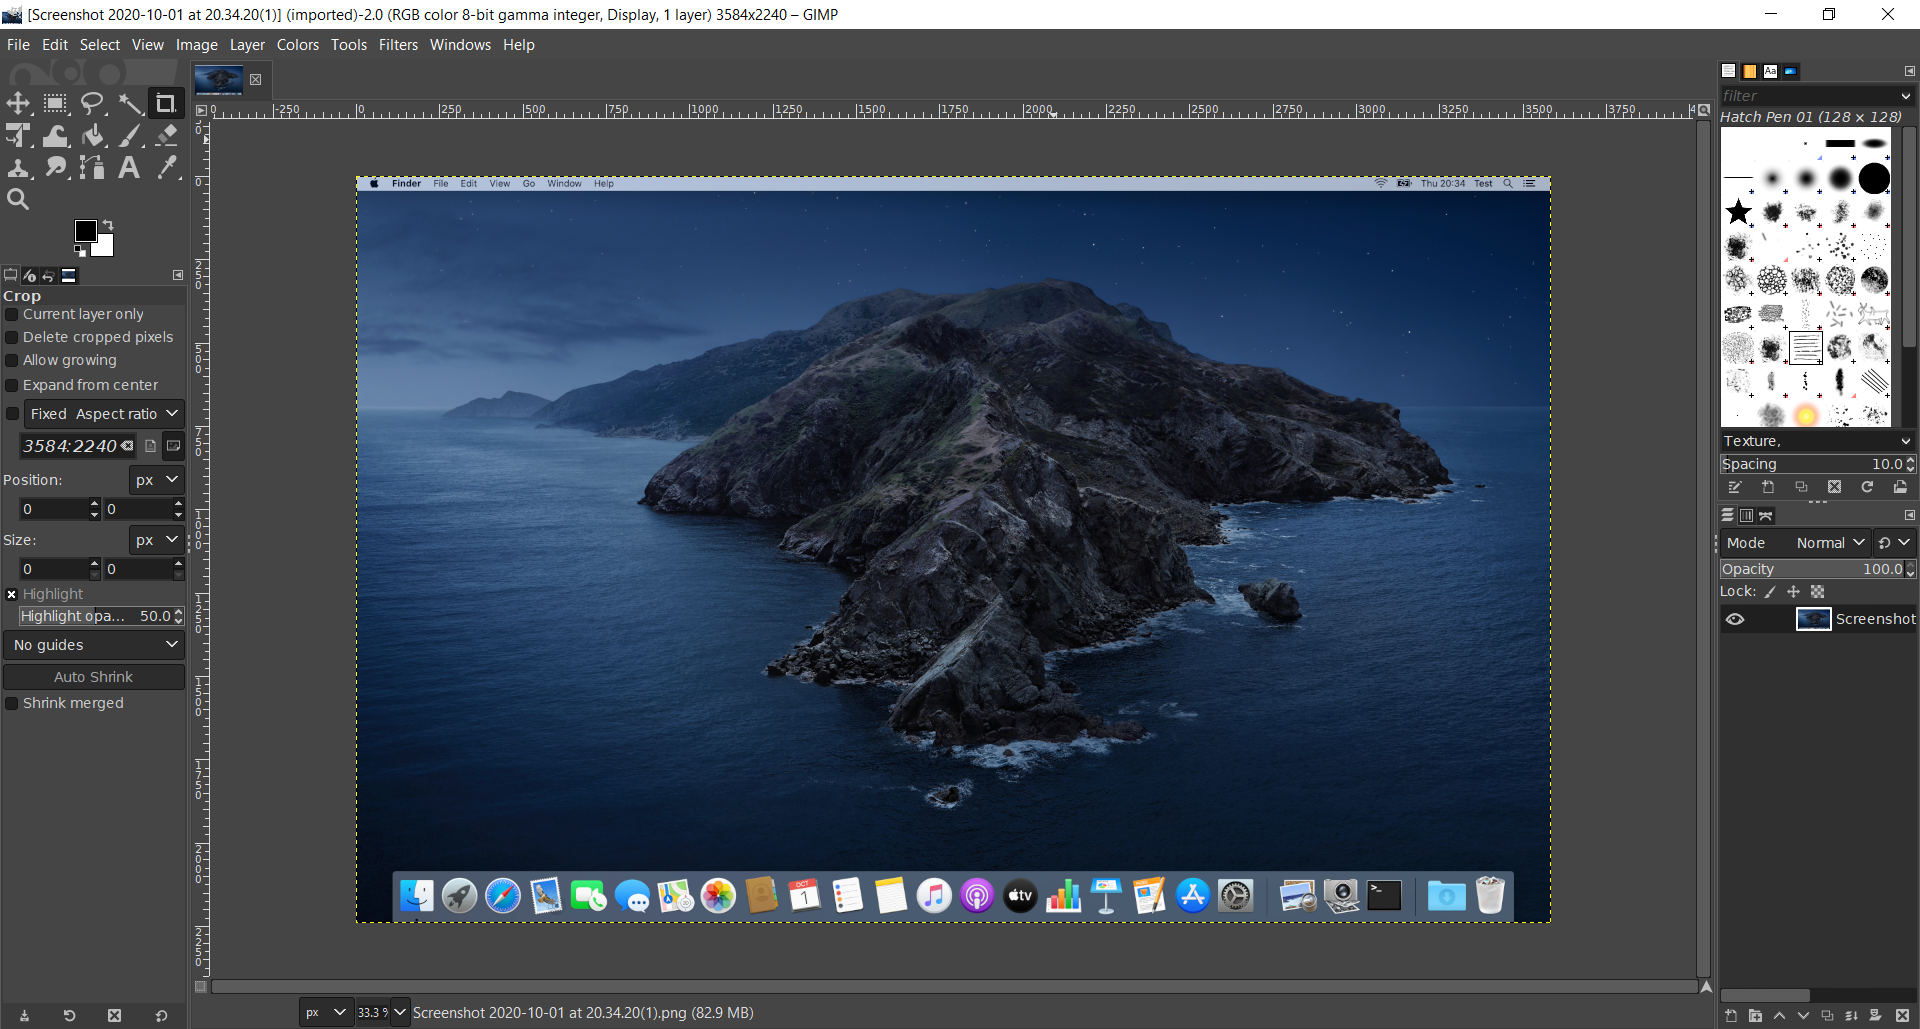 GIMP - available for Mac and Windows